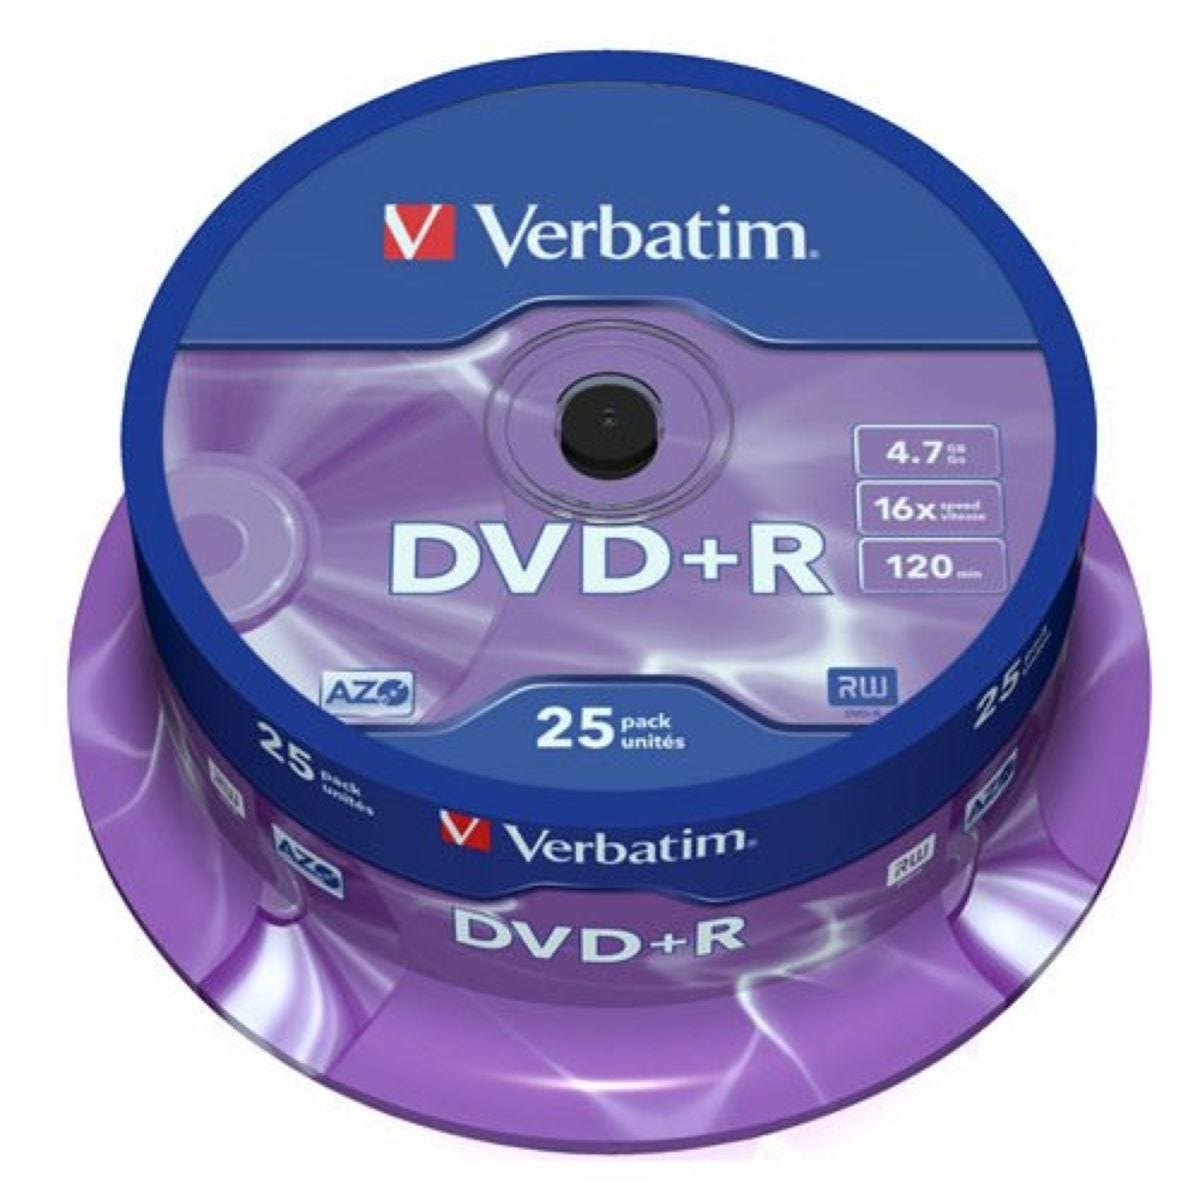 Verbatim DVD+R Spindle 25pk